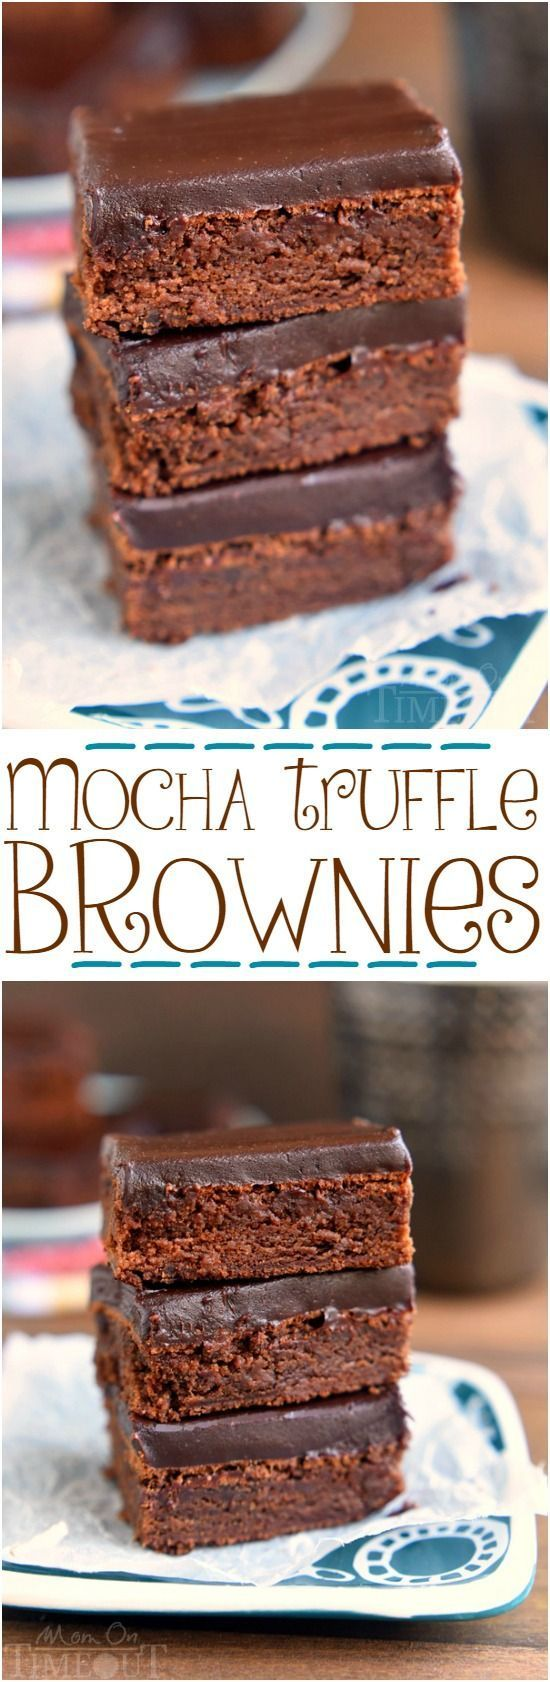 These decadent Mocha Truffle Brownies are just what your sweet tooth is craving. Rich mocha brownies are topped with a decadent chocolate ganache frosting and baked to perfection. All you need is a cold glass of milk!  | Posted By: DebbieNet.com